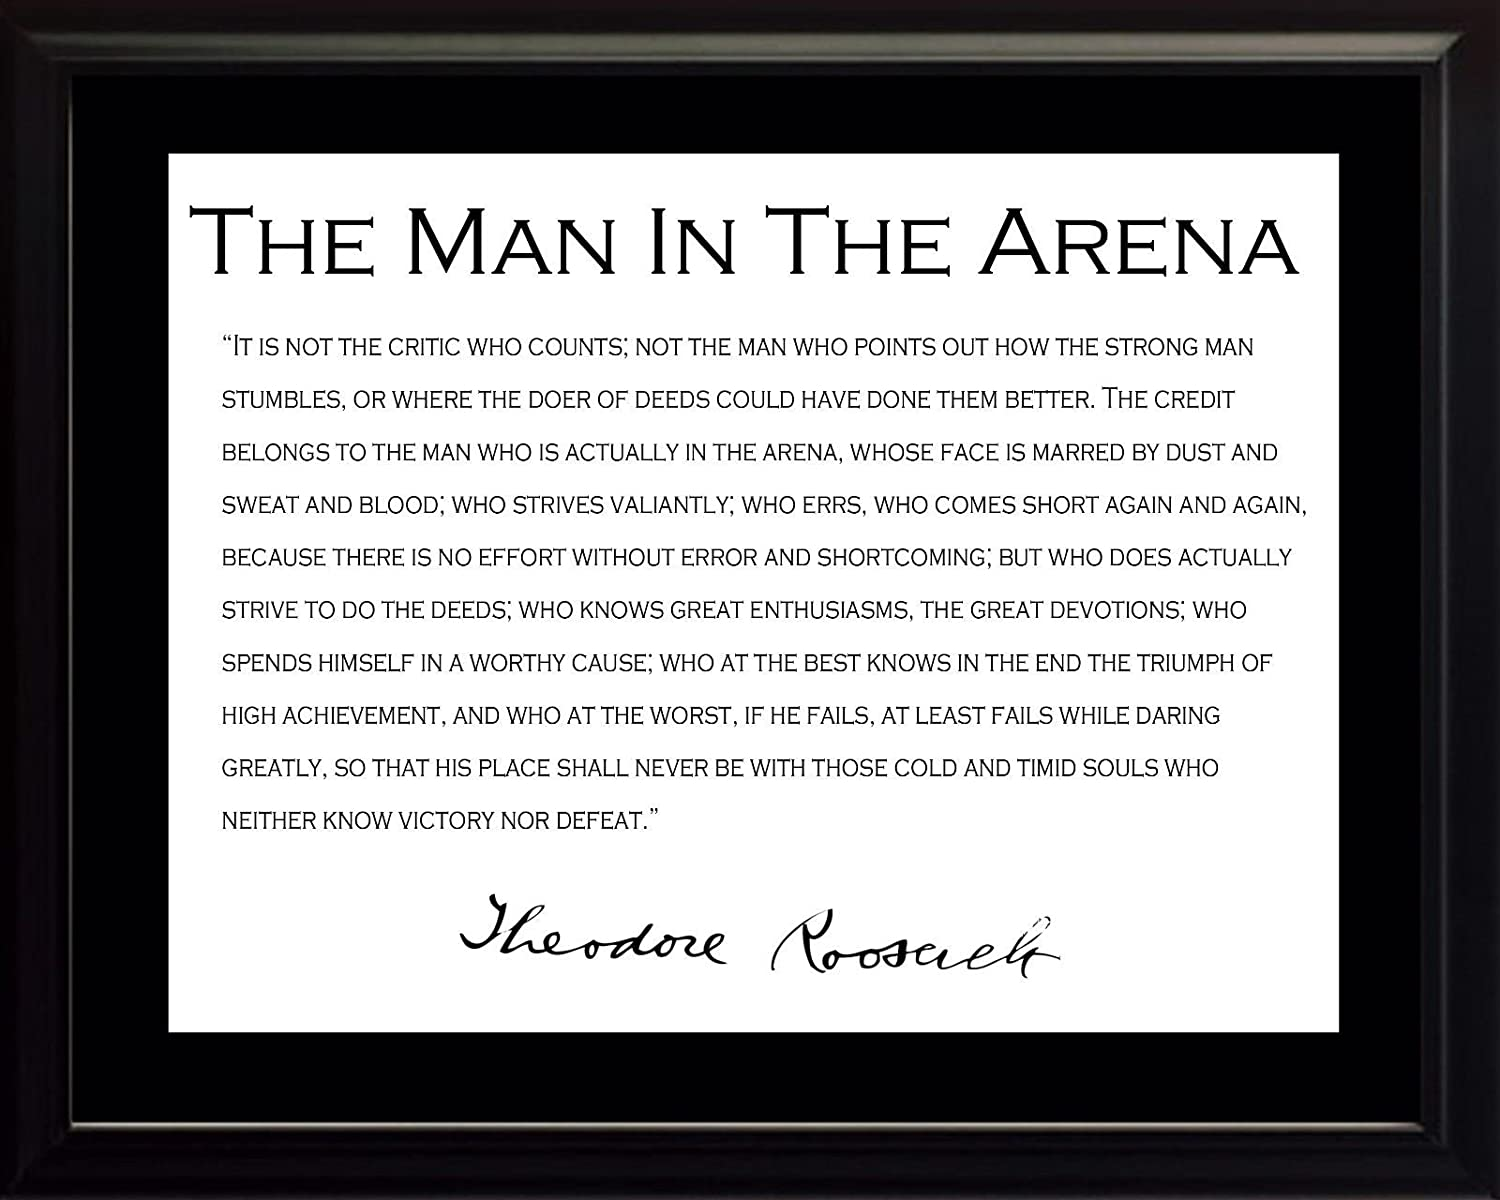 Theodore Teddy Roosevelt the Man in the Arena Quote 8x10 Framed Picture with Black Border wesellphotos